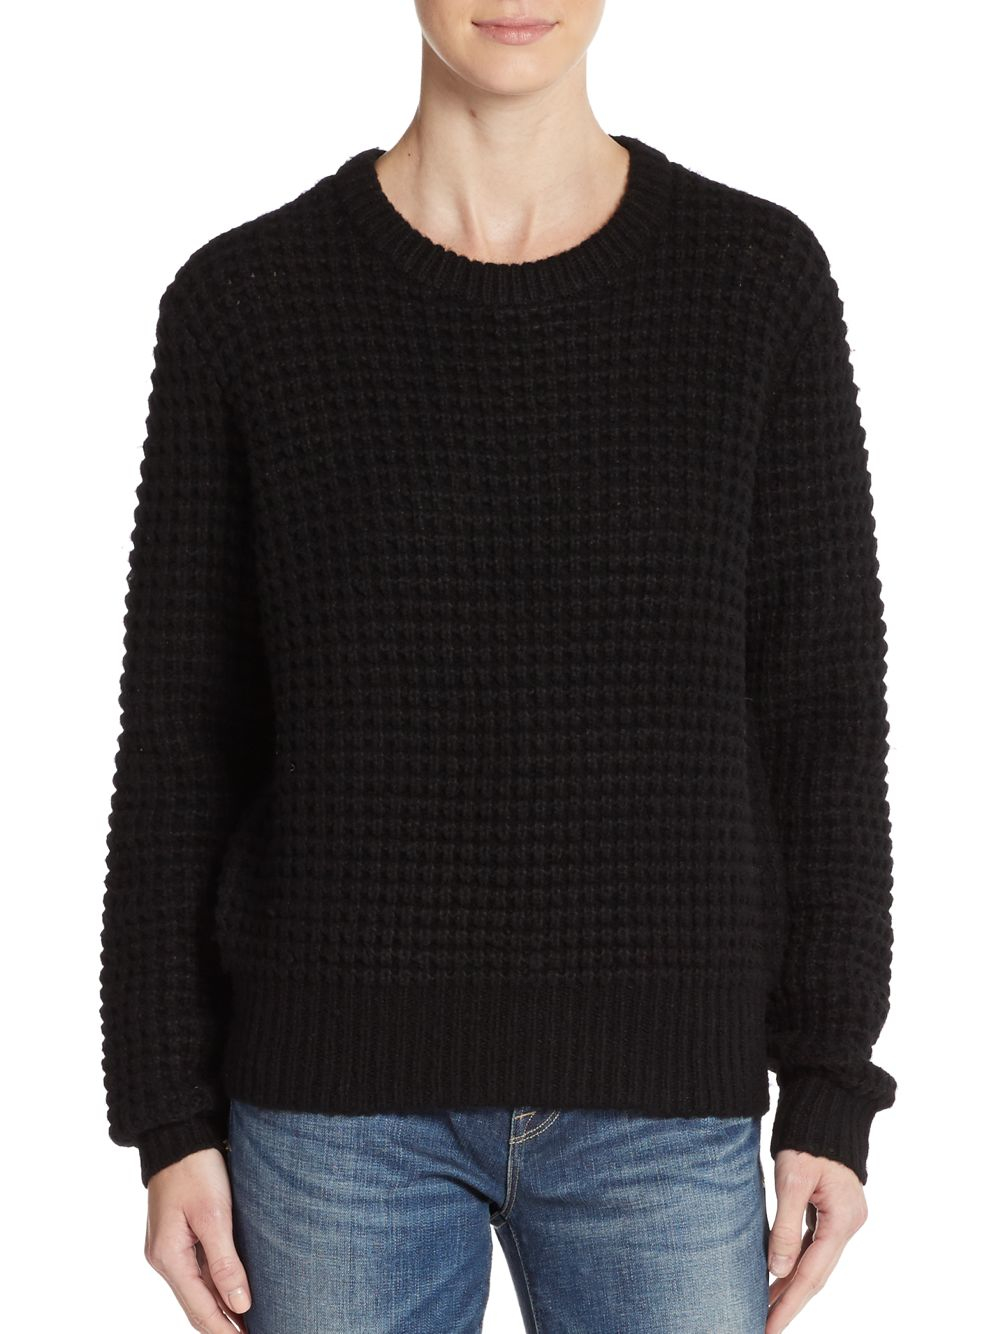 marc by marc jacobs wally waffle knit sweater in black lyst. Black Bedroom Furniture Sets. Home Design Ideas